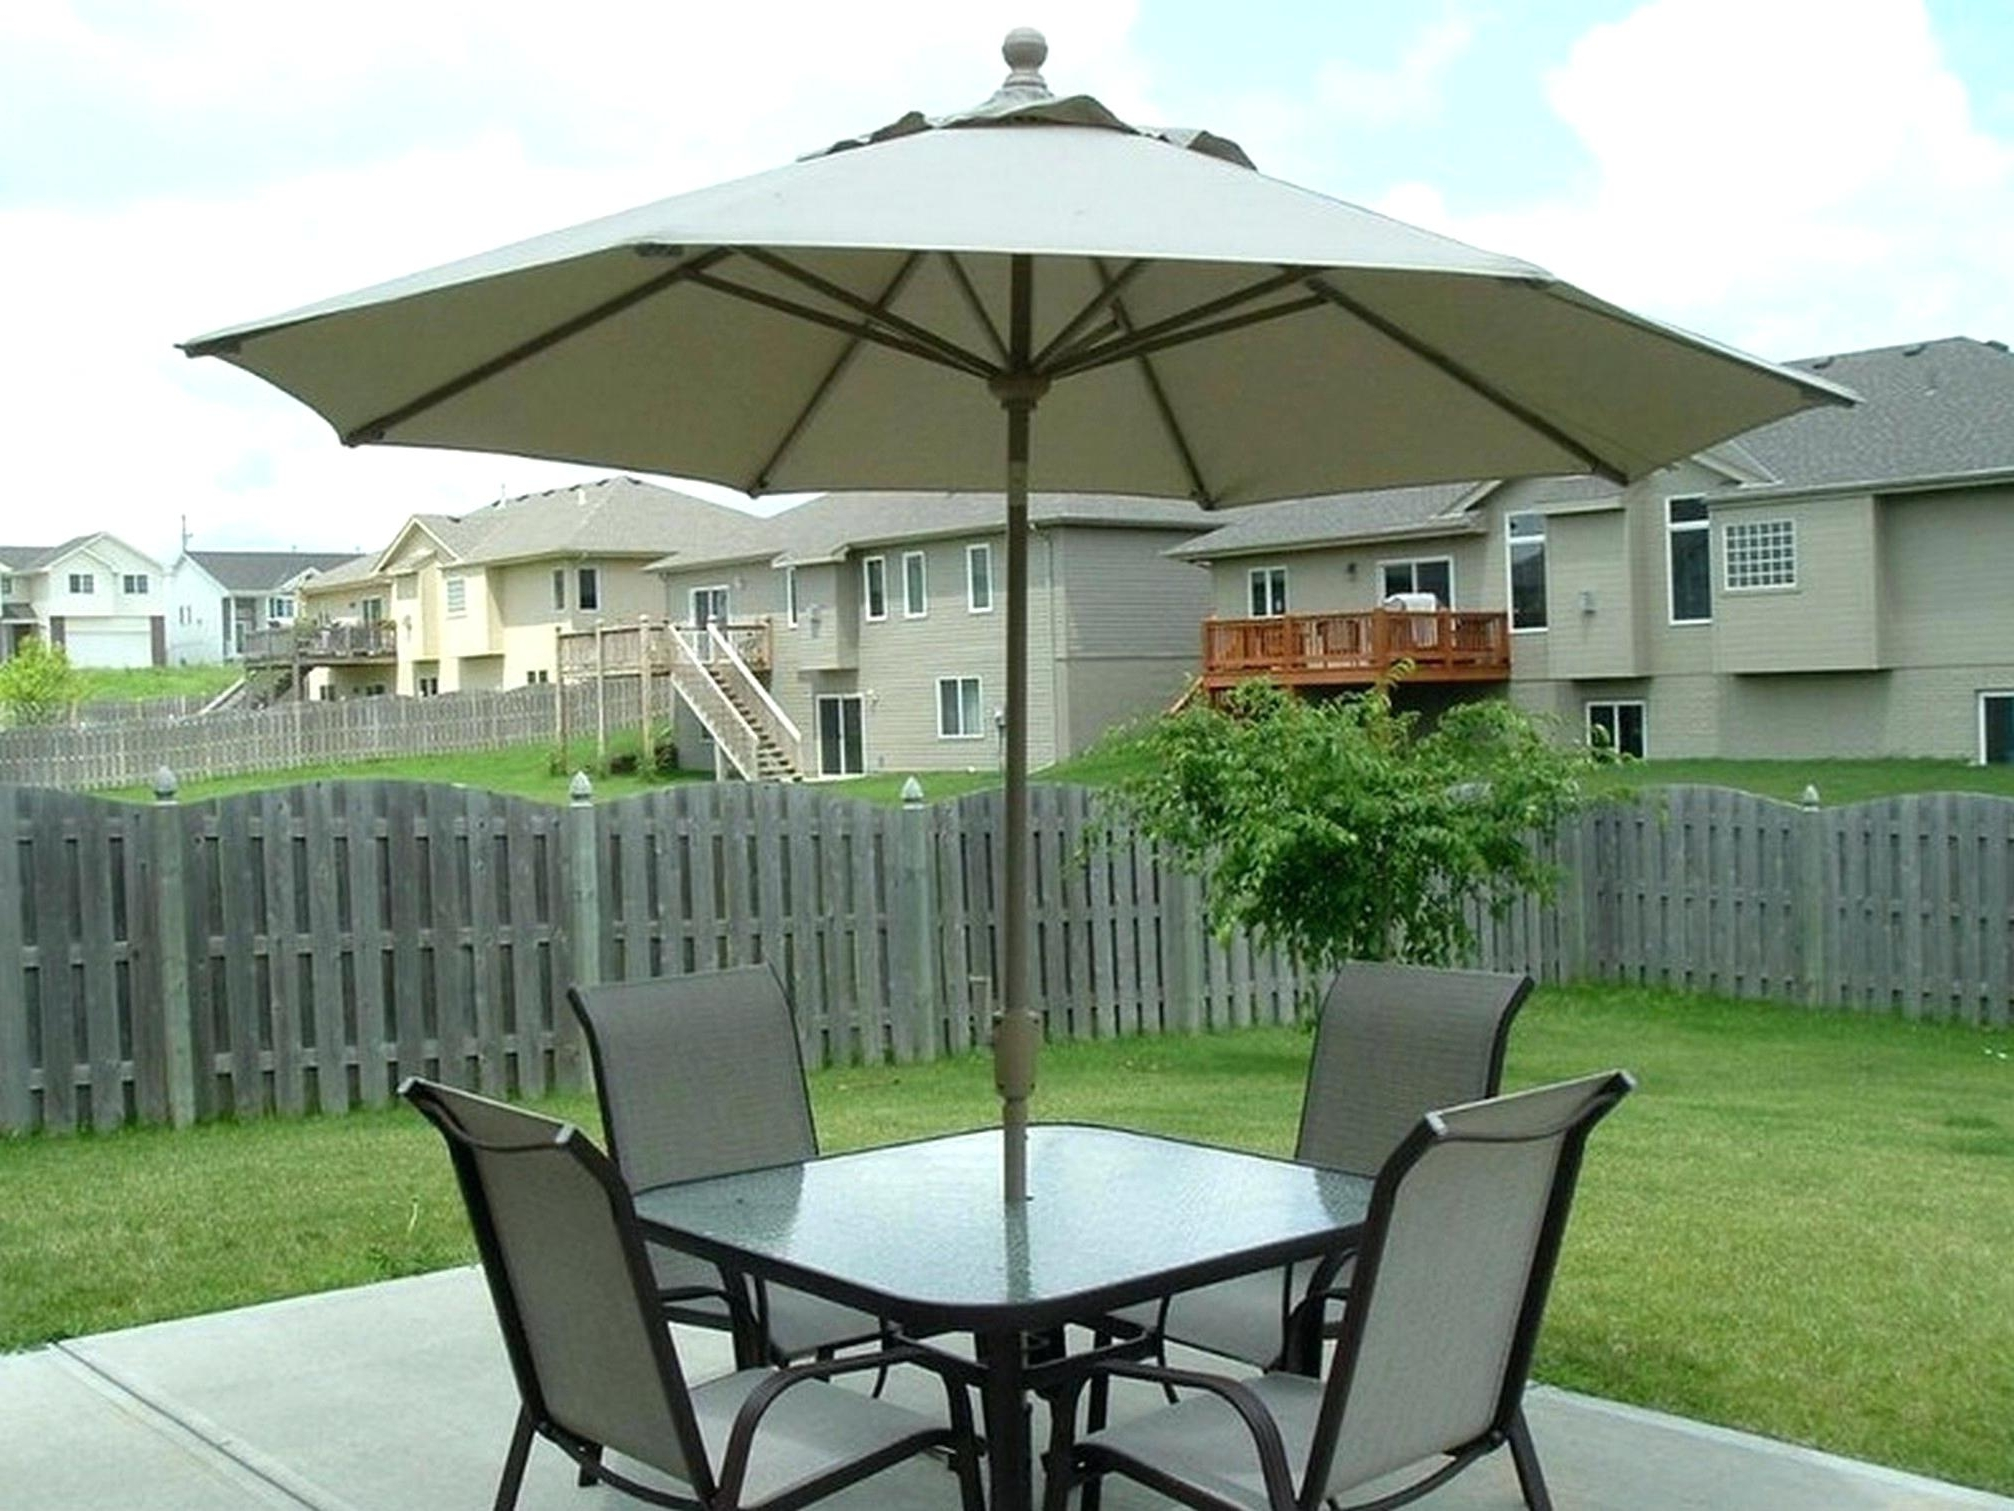 Patio Sets With Umbrellas Within Newest Outdoor Furniture Umbrellas 9 Ft Wood Commercial Grade Patio (View 13 of 20)